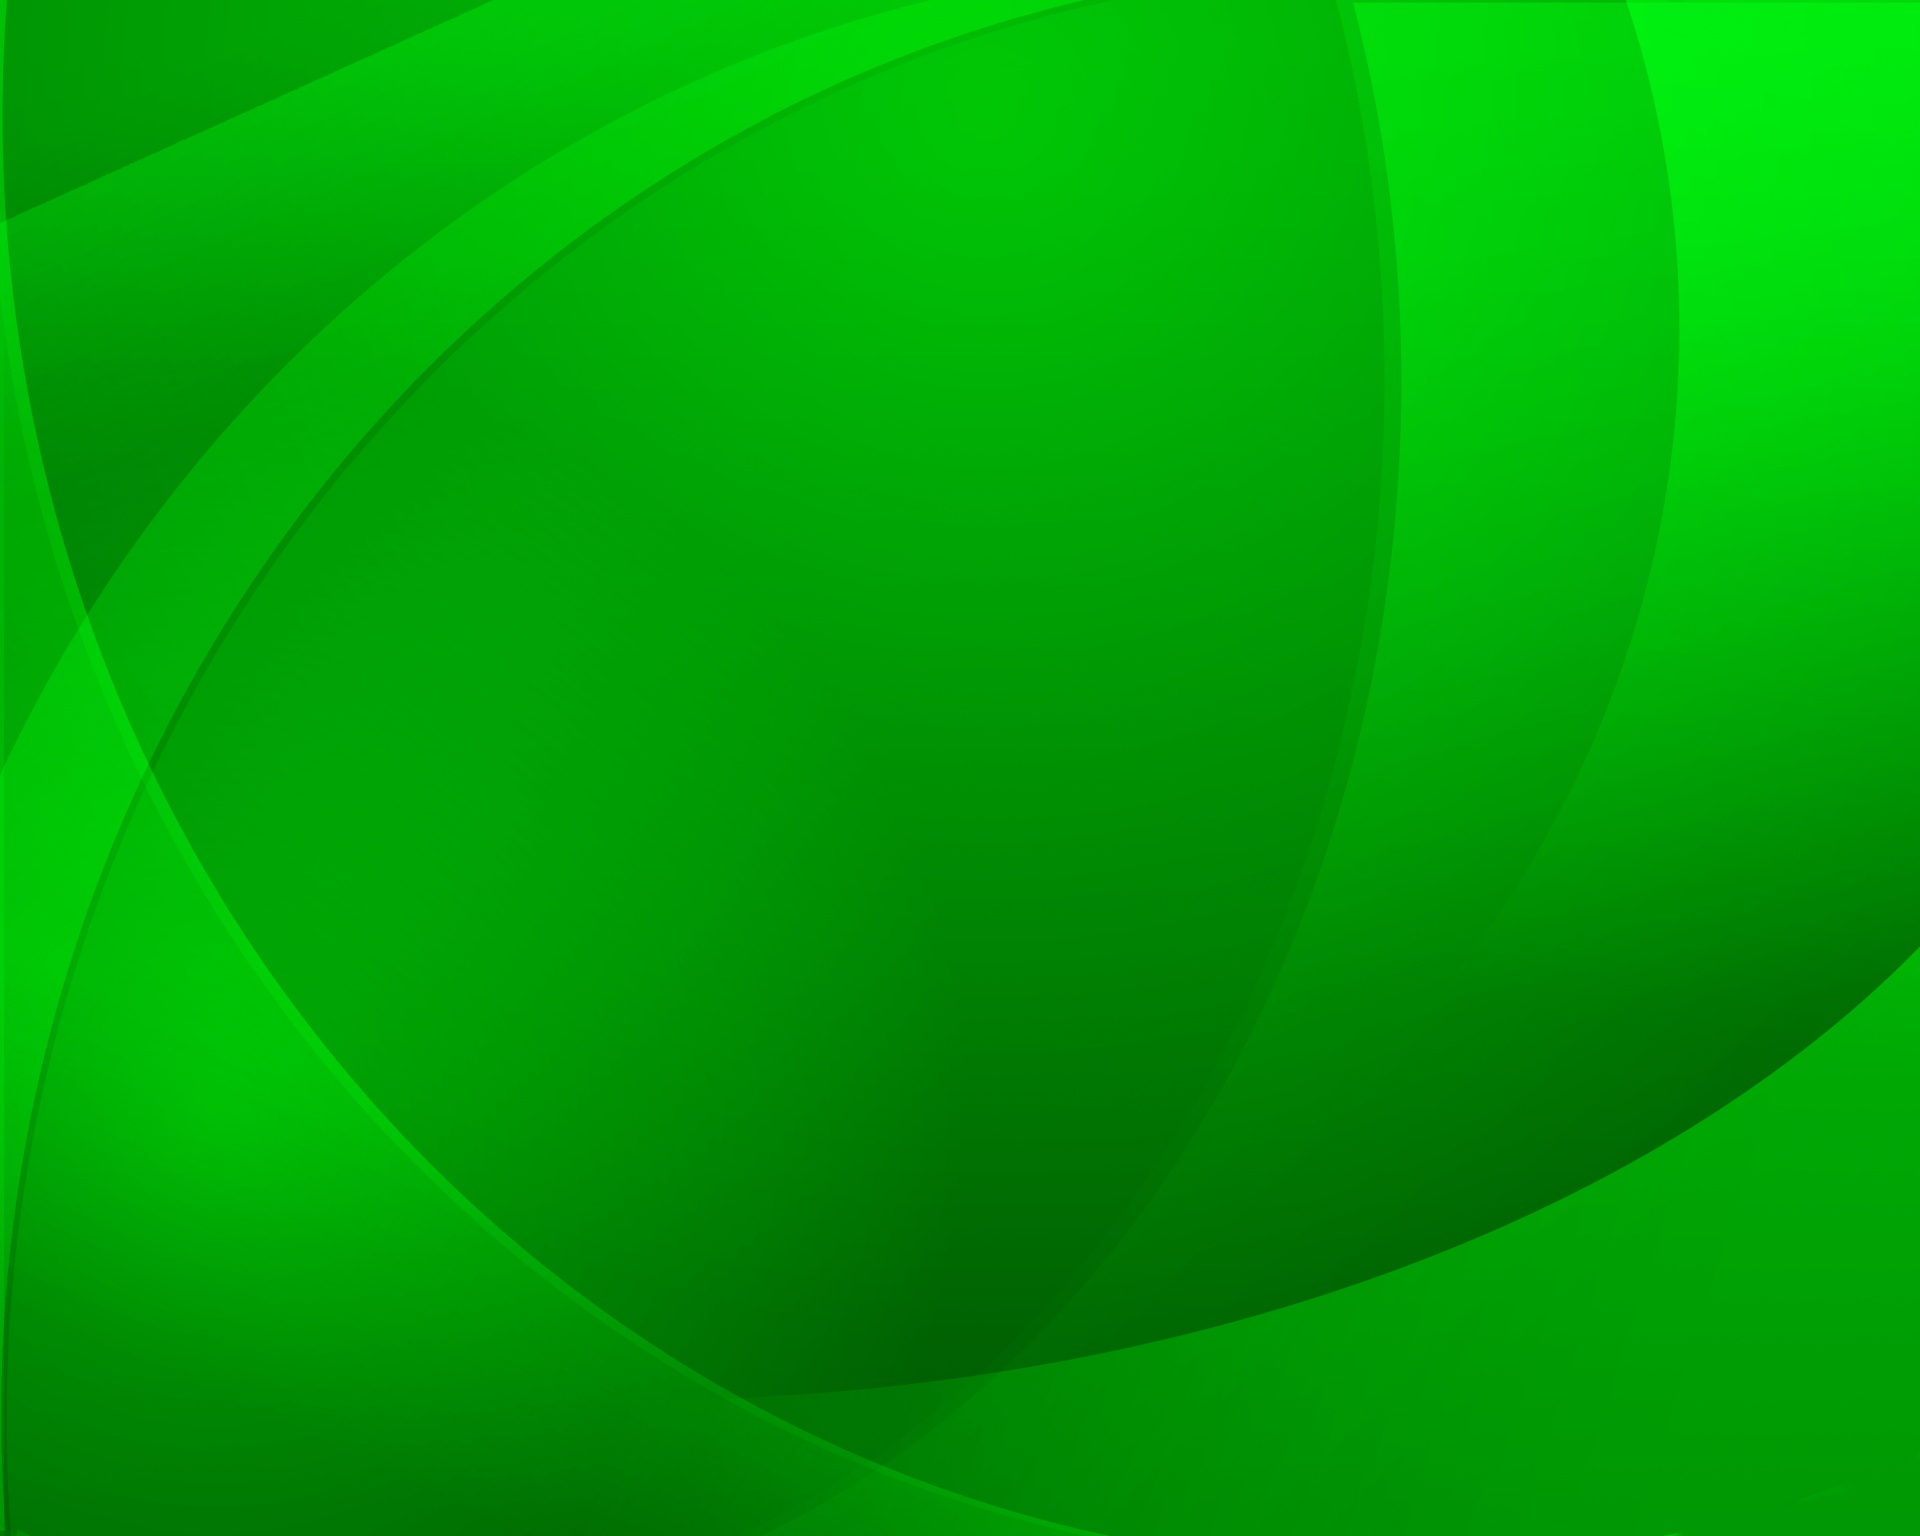 Wallpaper Background Abstract Green Curve Free Image From